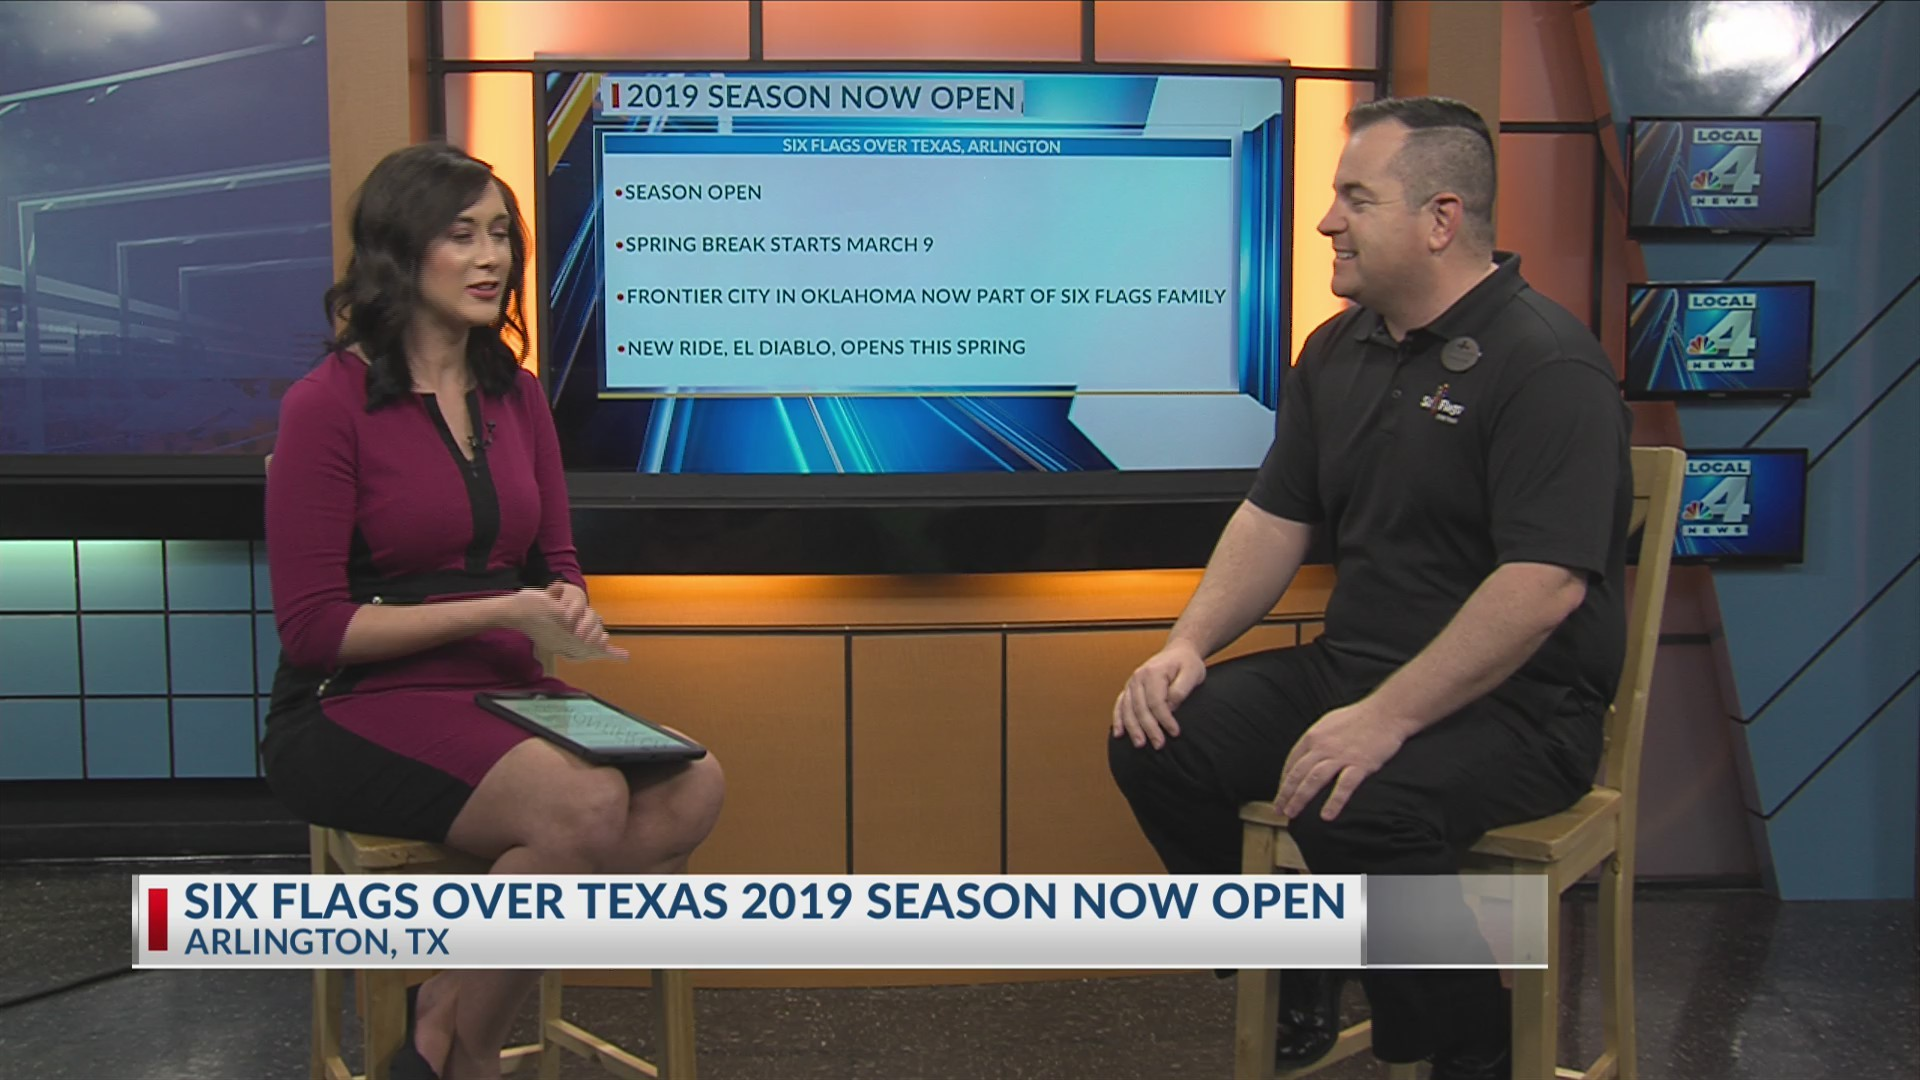 Six Flags Over Texas Getting Ready for 2019 Season